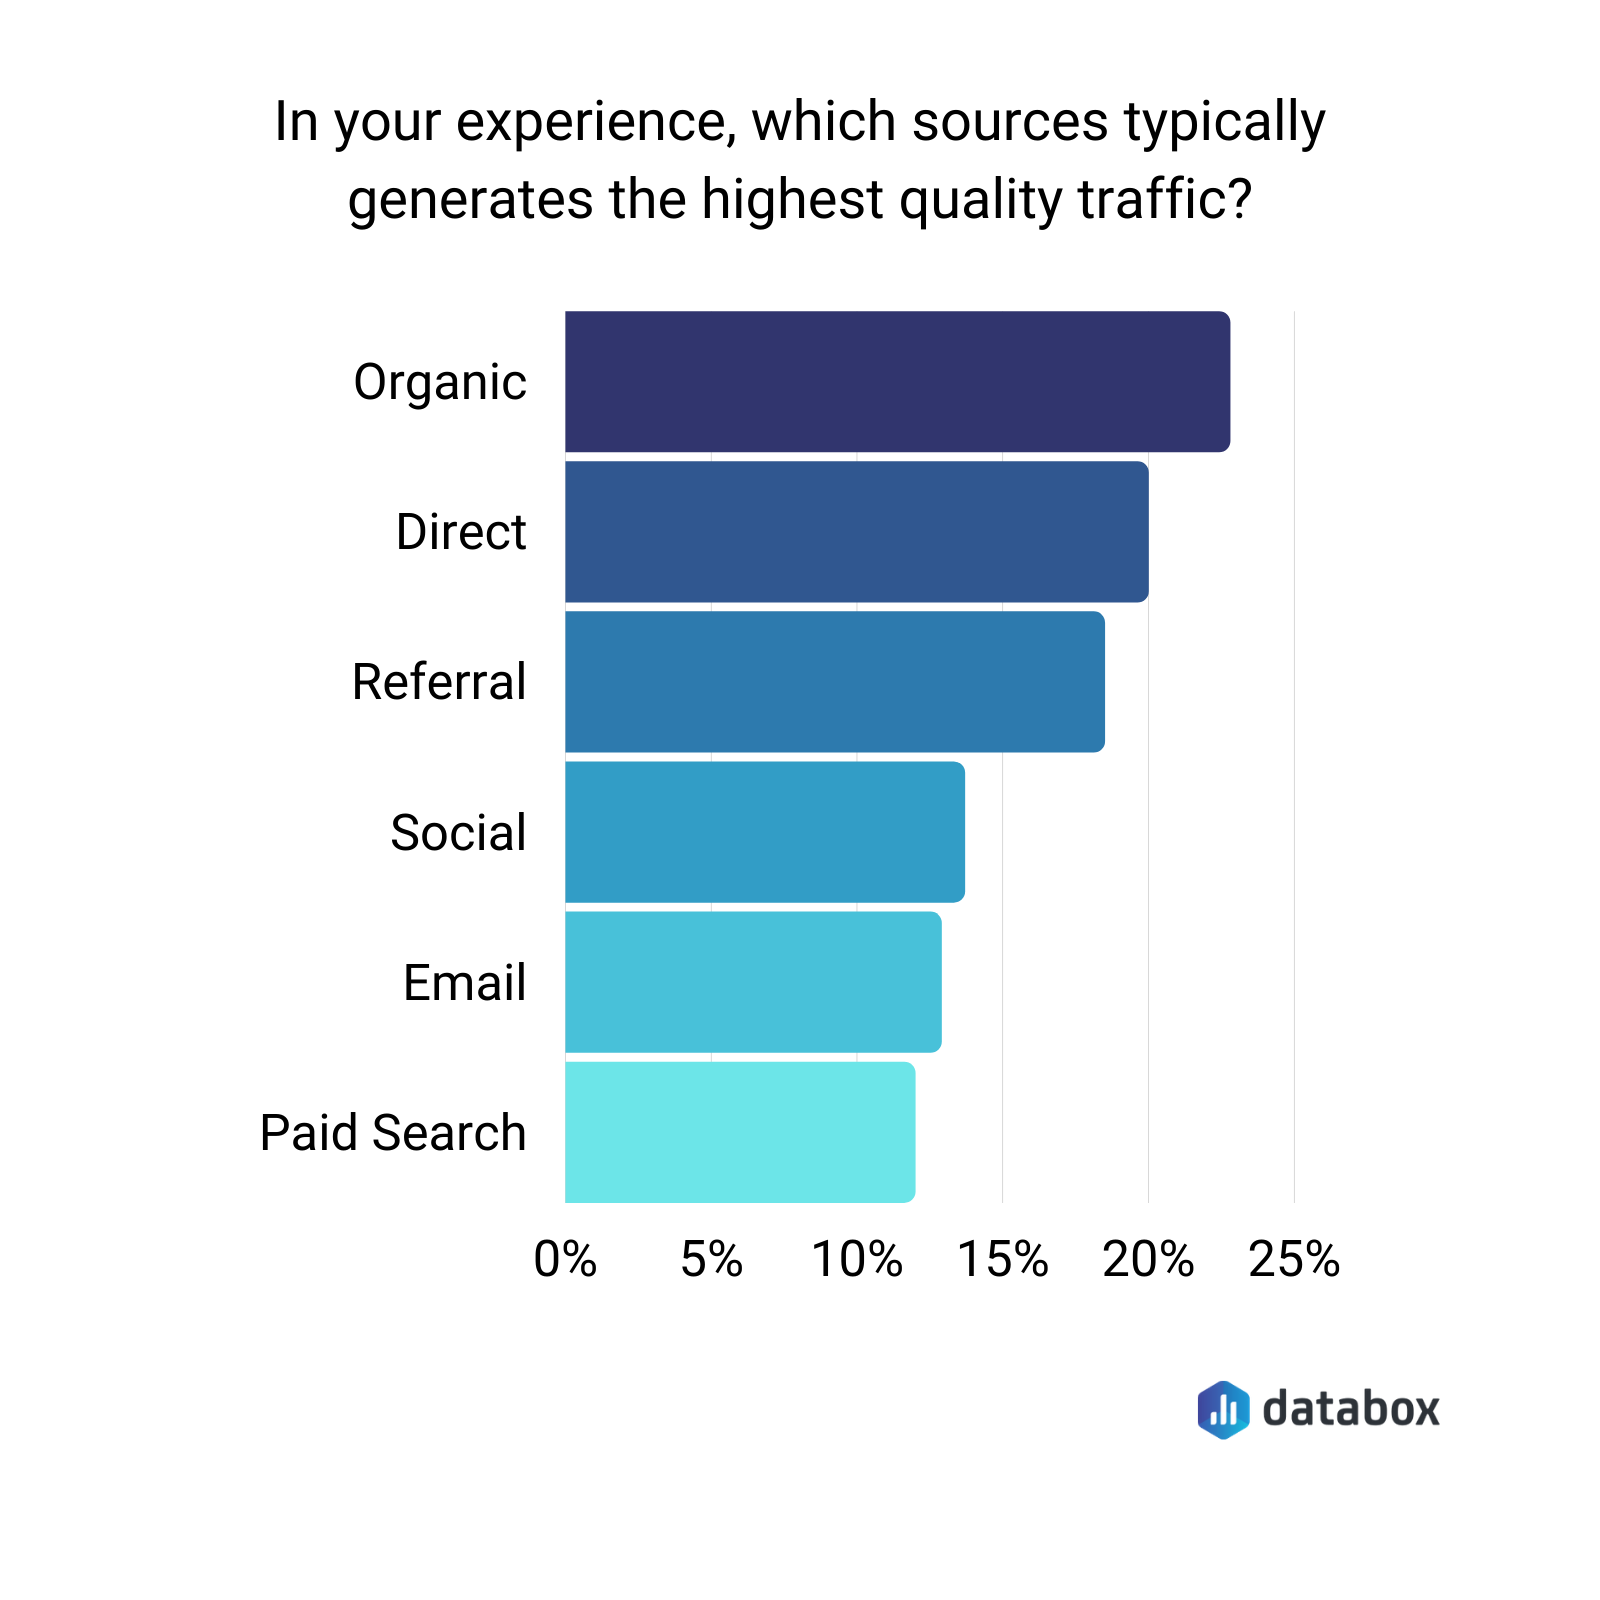 which sources typically generates the highest quality traffic